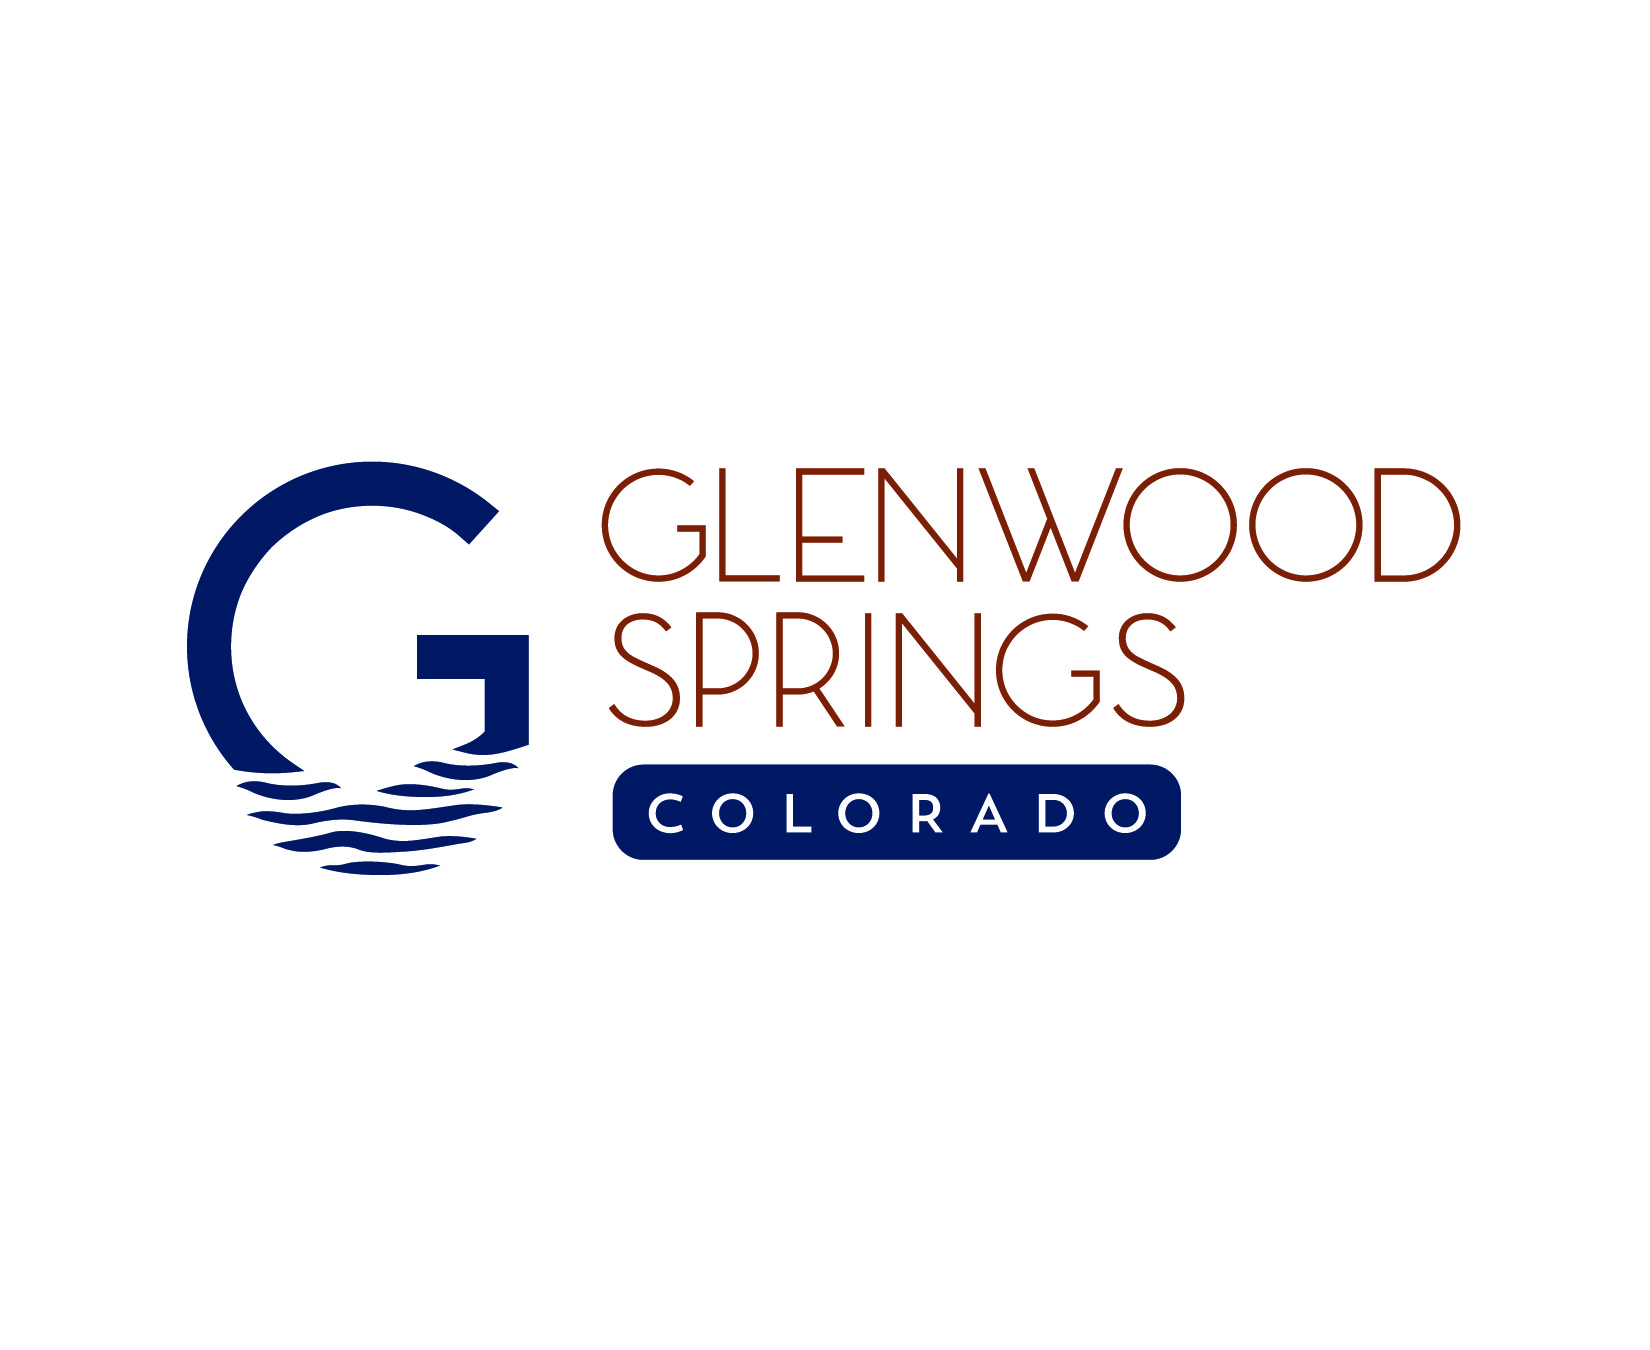 Two Iconic Glenwood Springs Landmarks Celebrate 125 Years With A